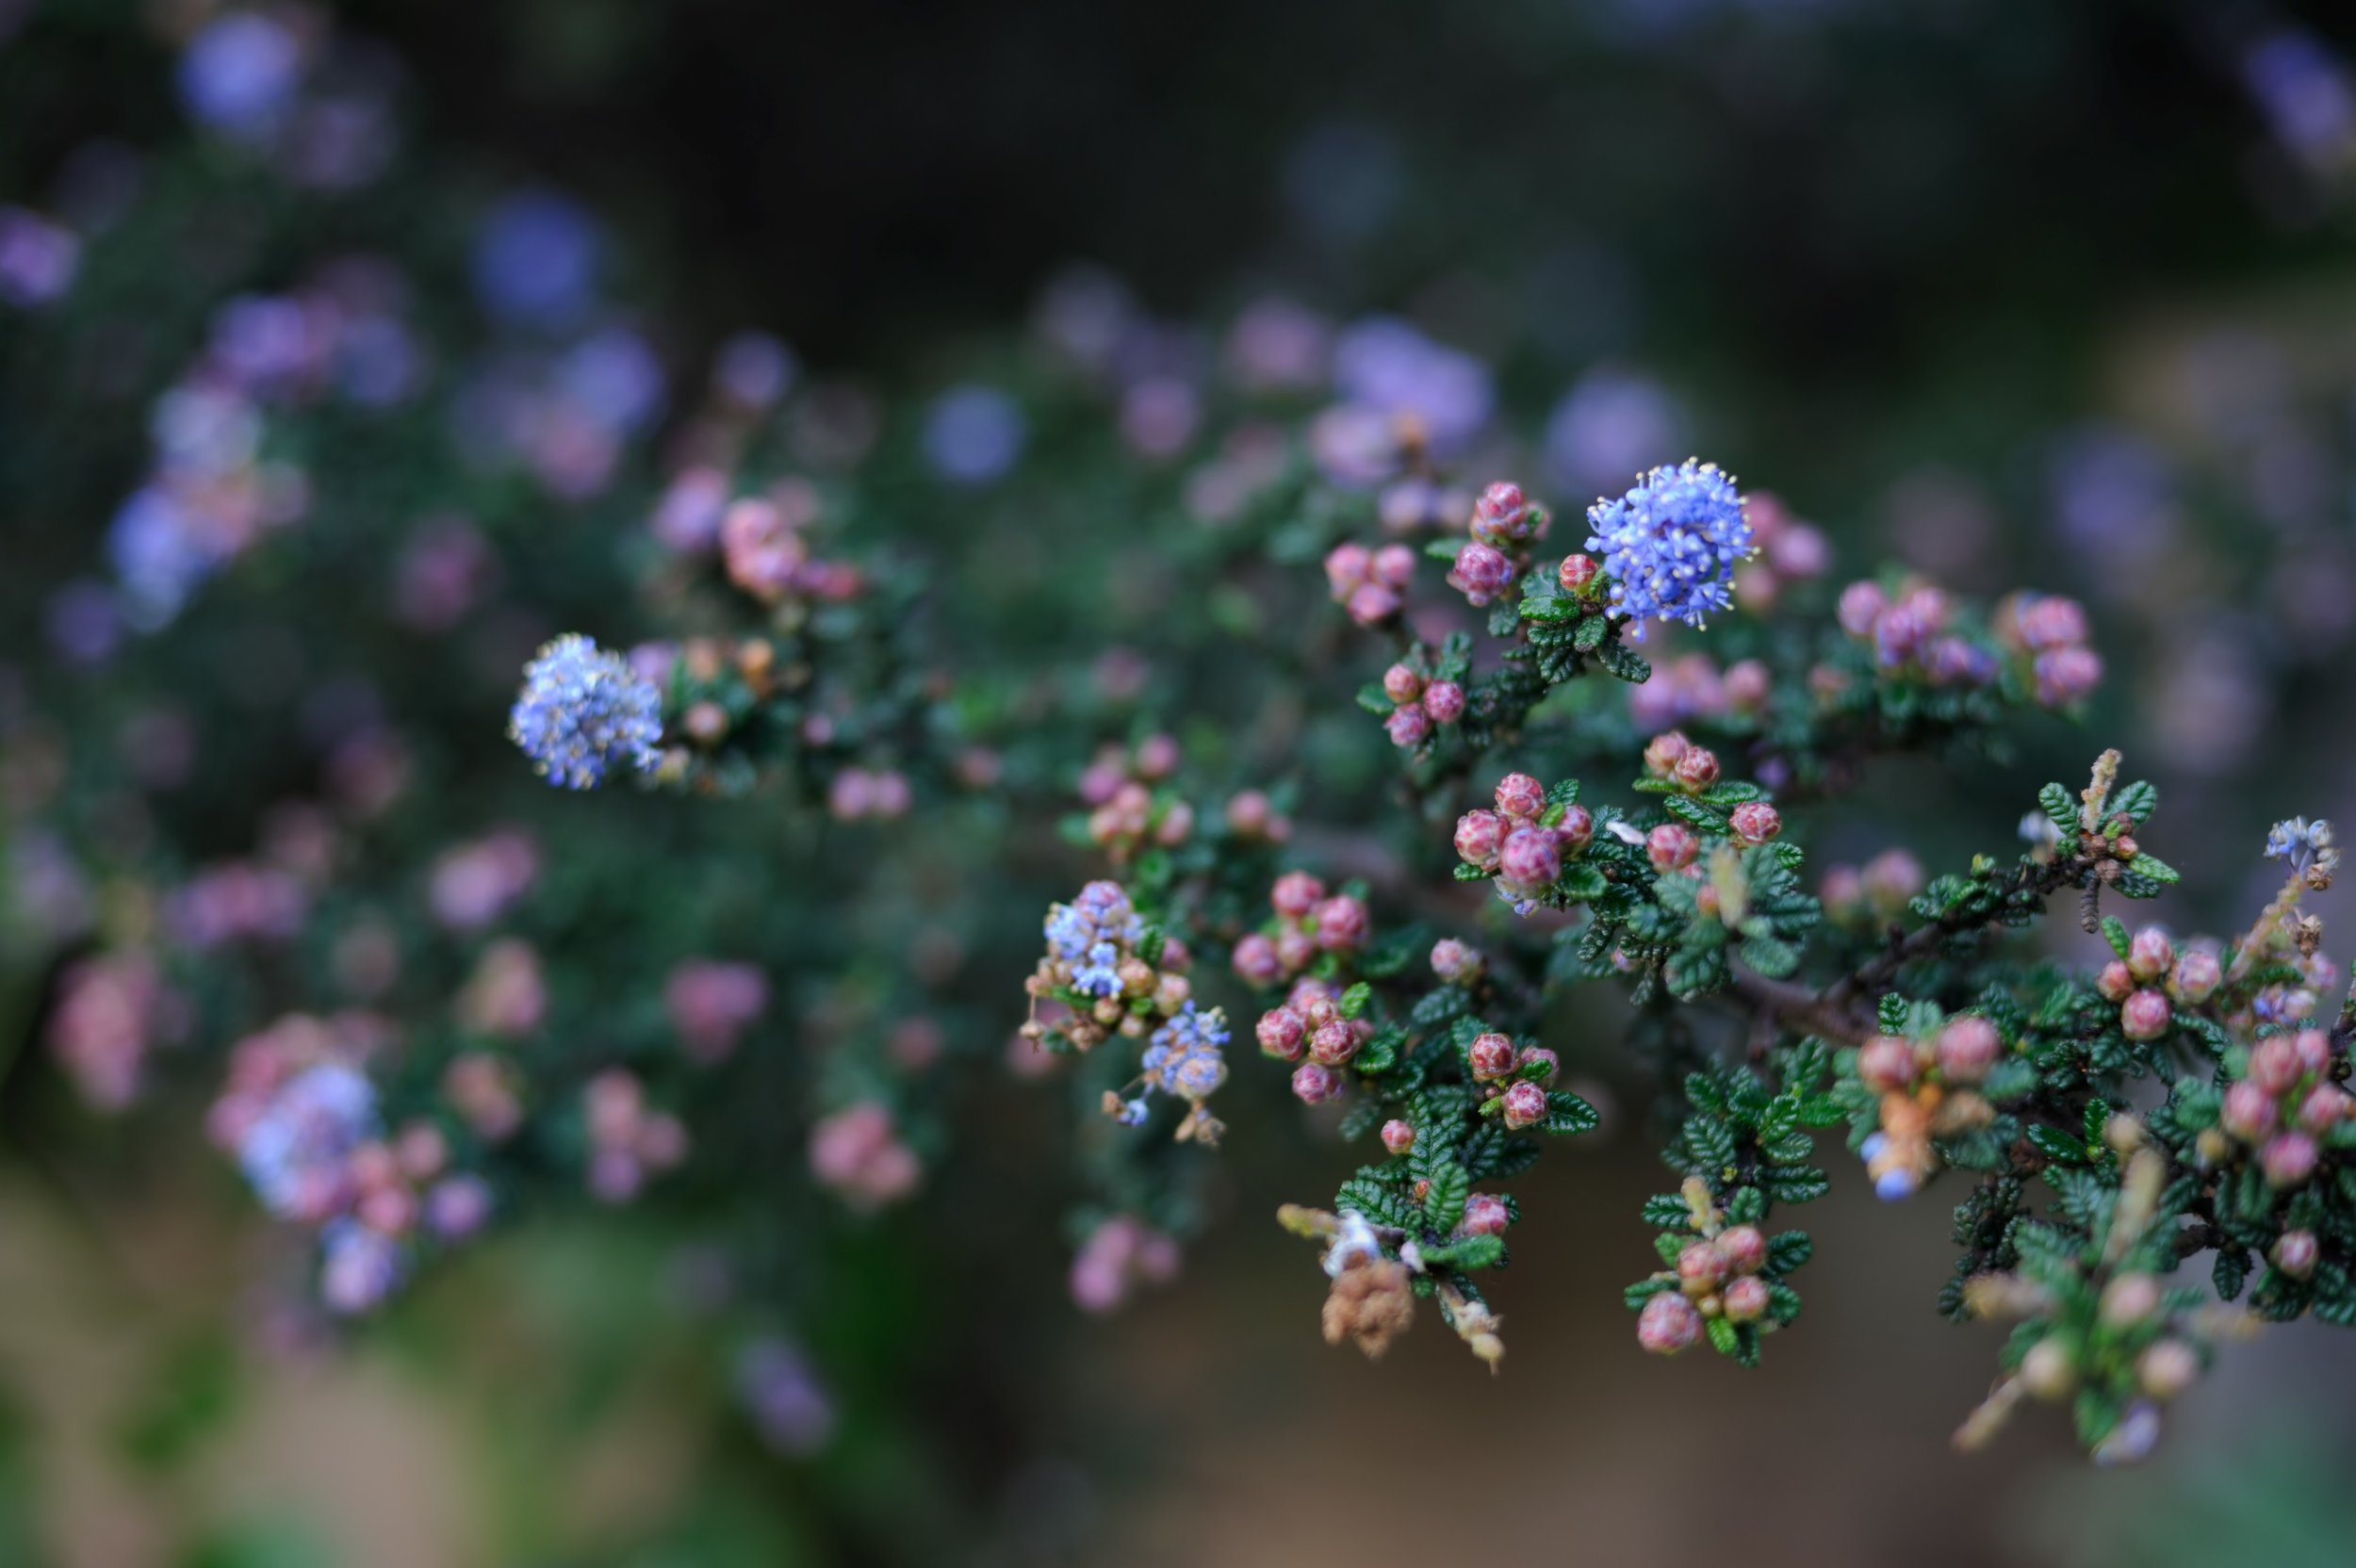 Another variety of  Ceanothus  with darker leaves and flowers.